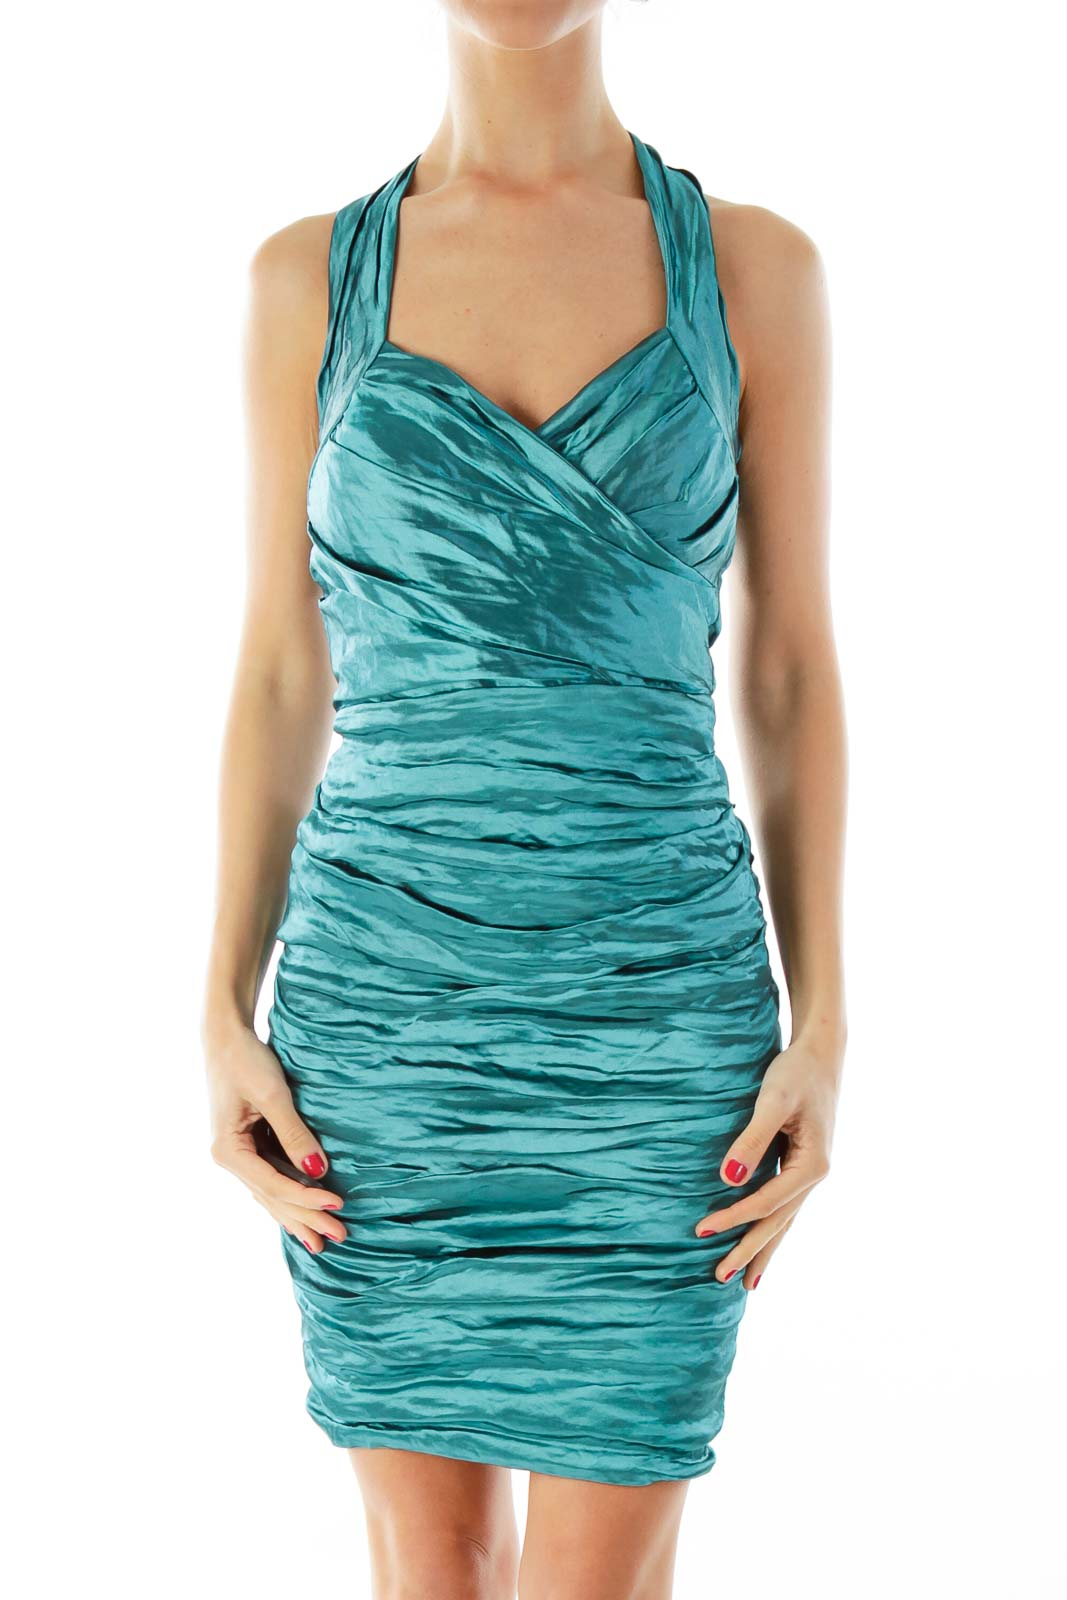 Turquoise Halter Cocktail Dress